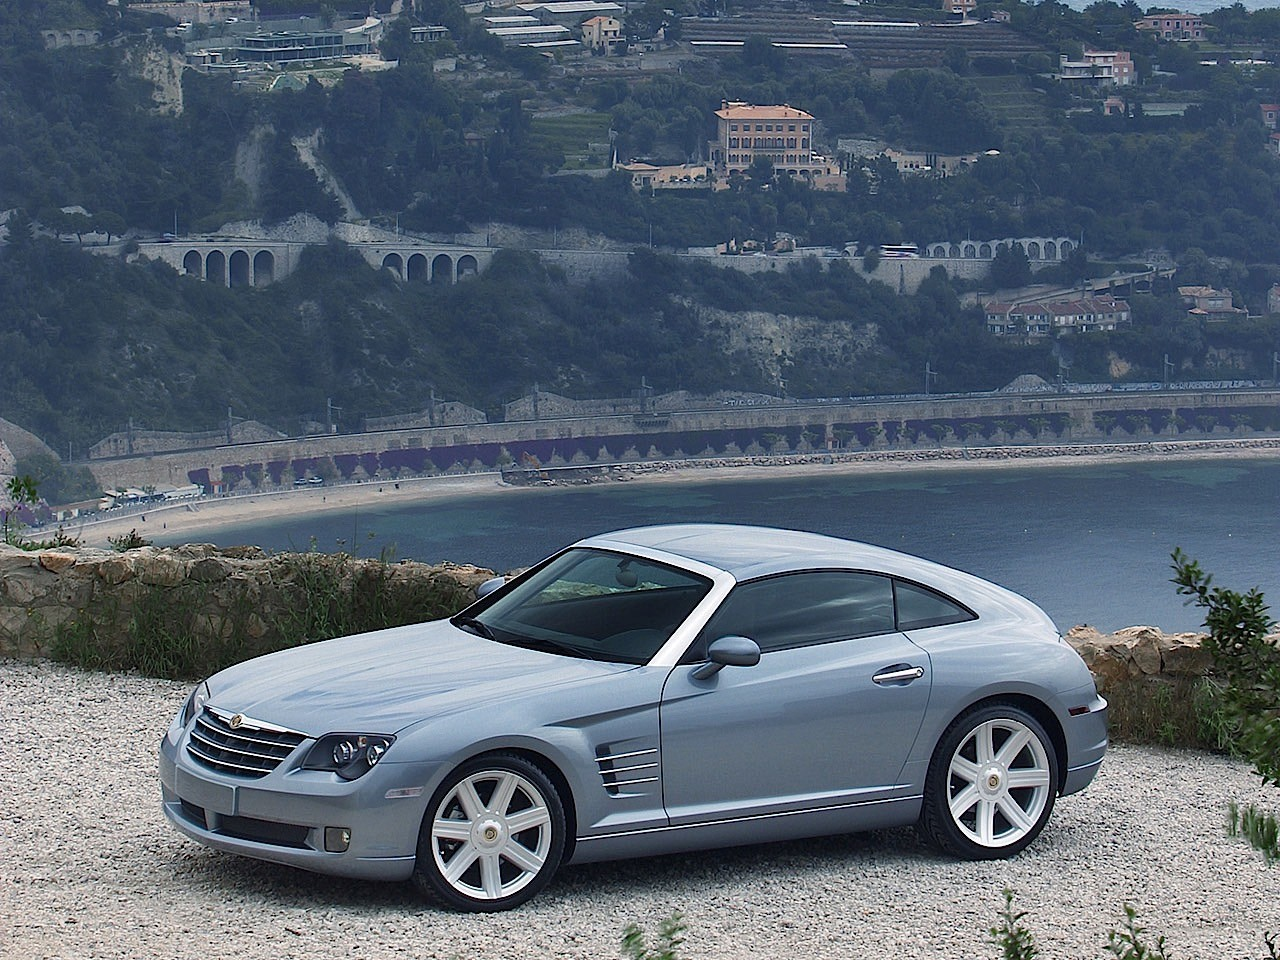 chrysler crossfire cargurus cars overview pic